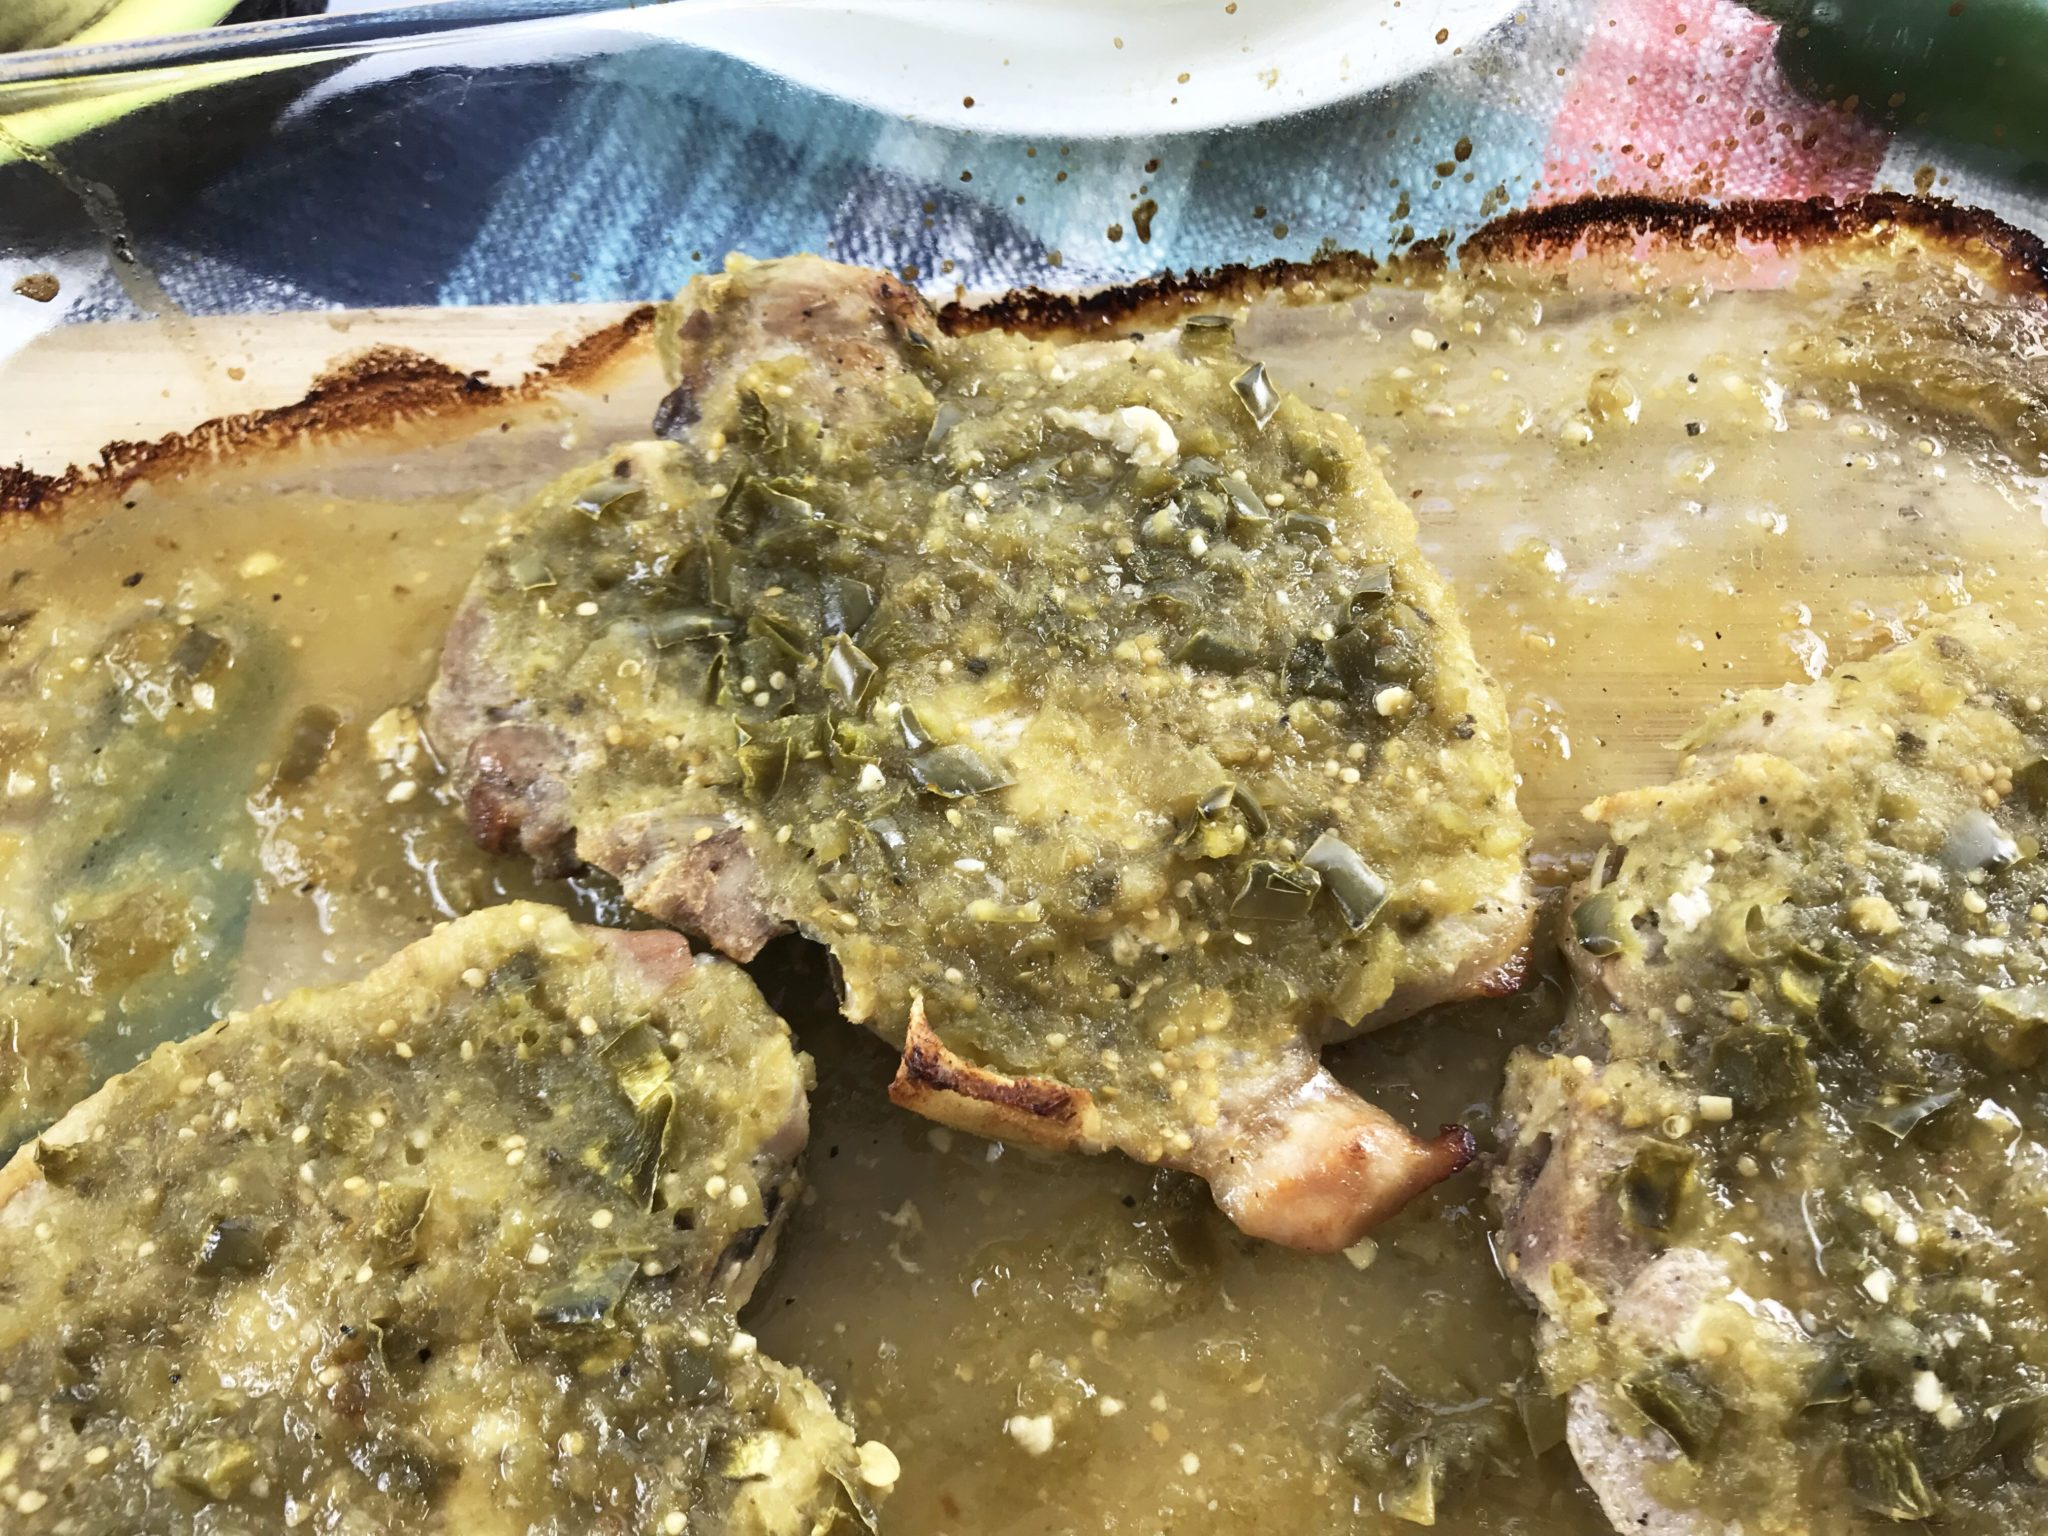 If you're looking for an easy weeknight dinner idea, these salsa verde pork chops are the answer. This recipe can be made quickly and it's delicious!